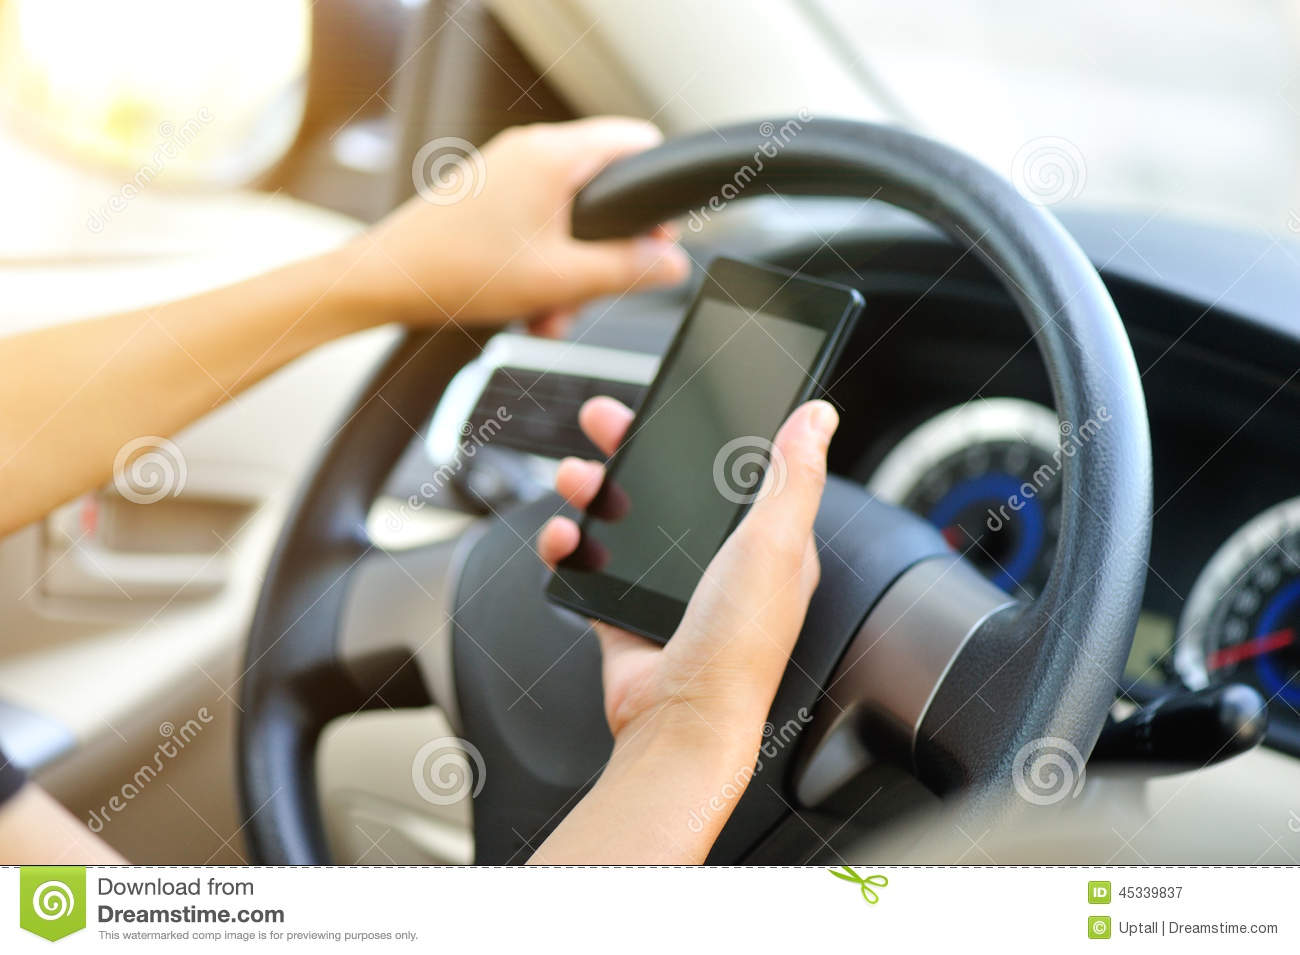 is use of mobile phone by Go ahead and use your mobile phone, but use it carefully, taking certain  commonsense precautions and be sure your kids have safe mobile.